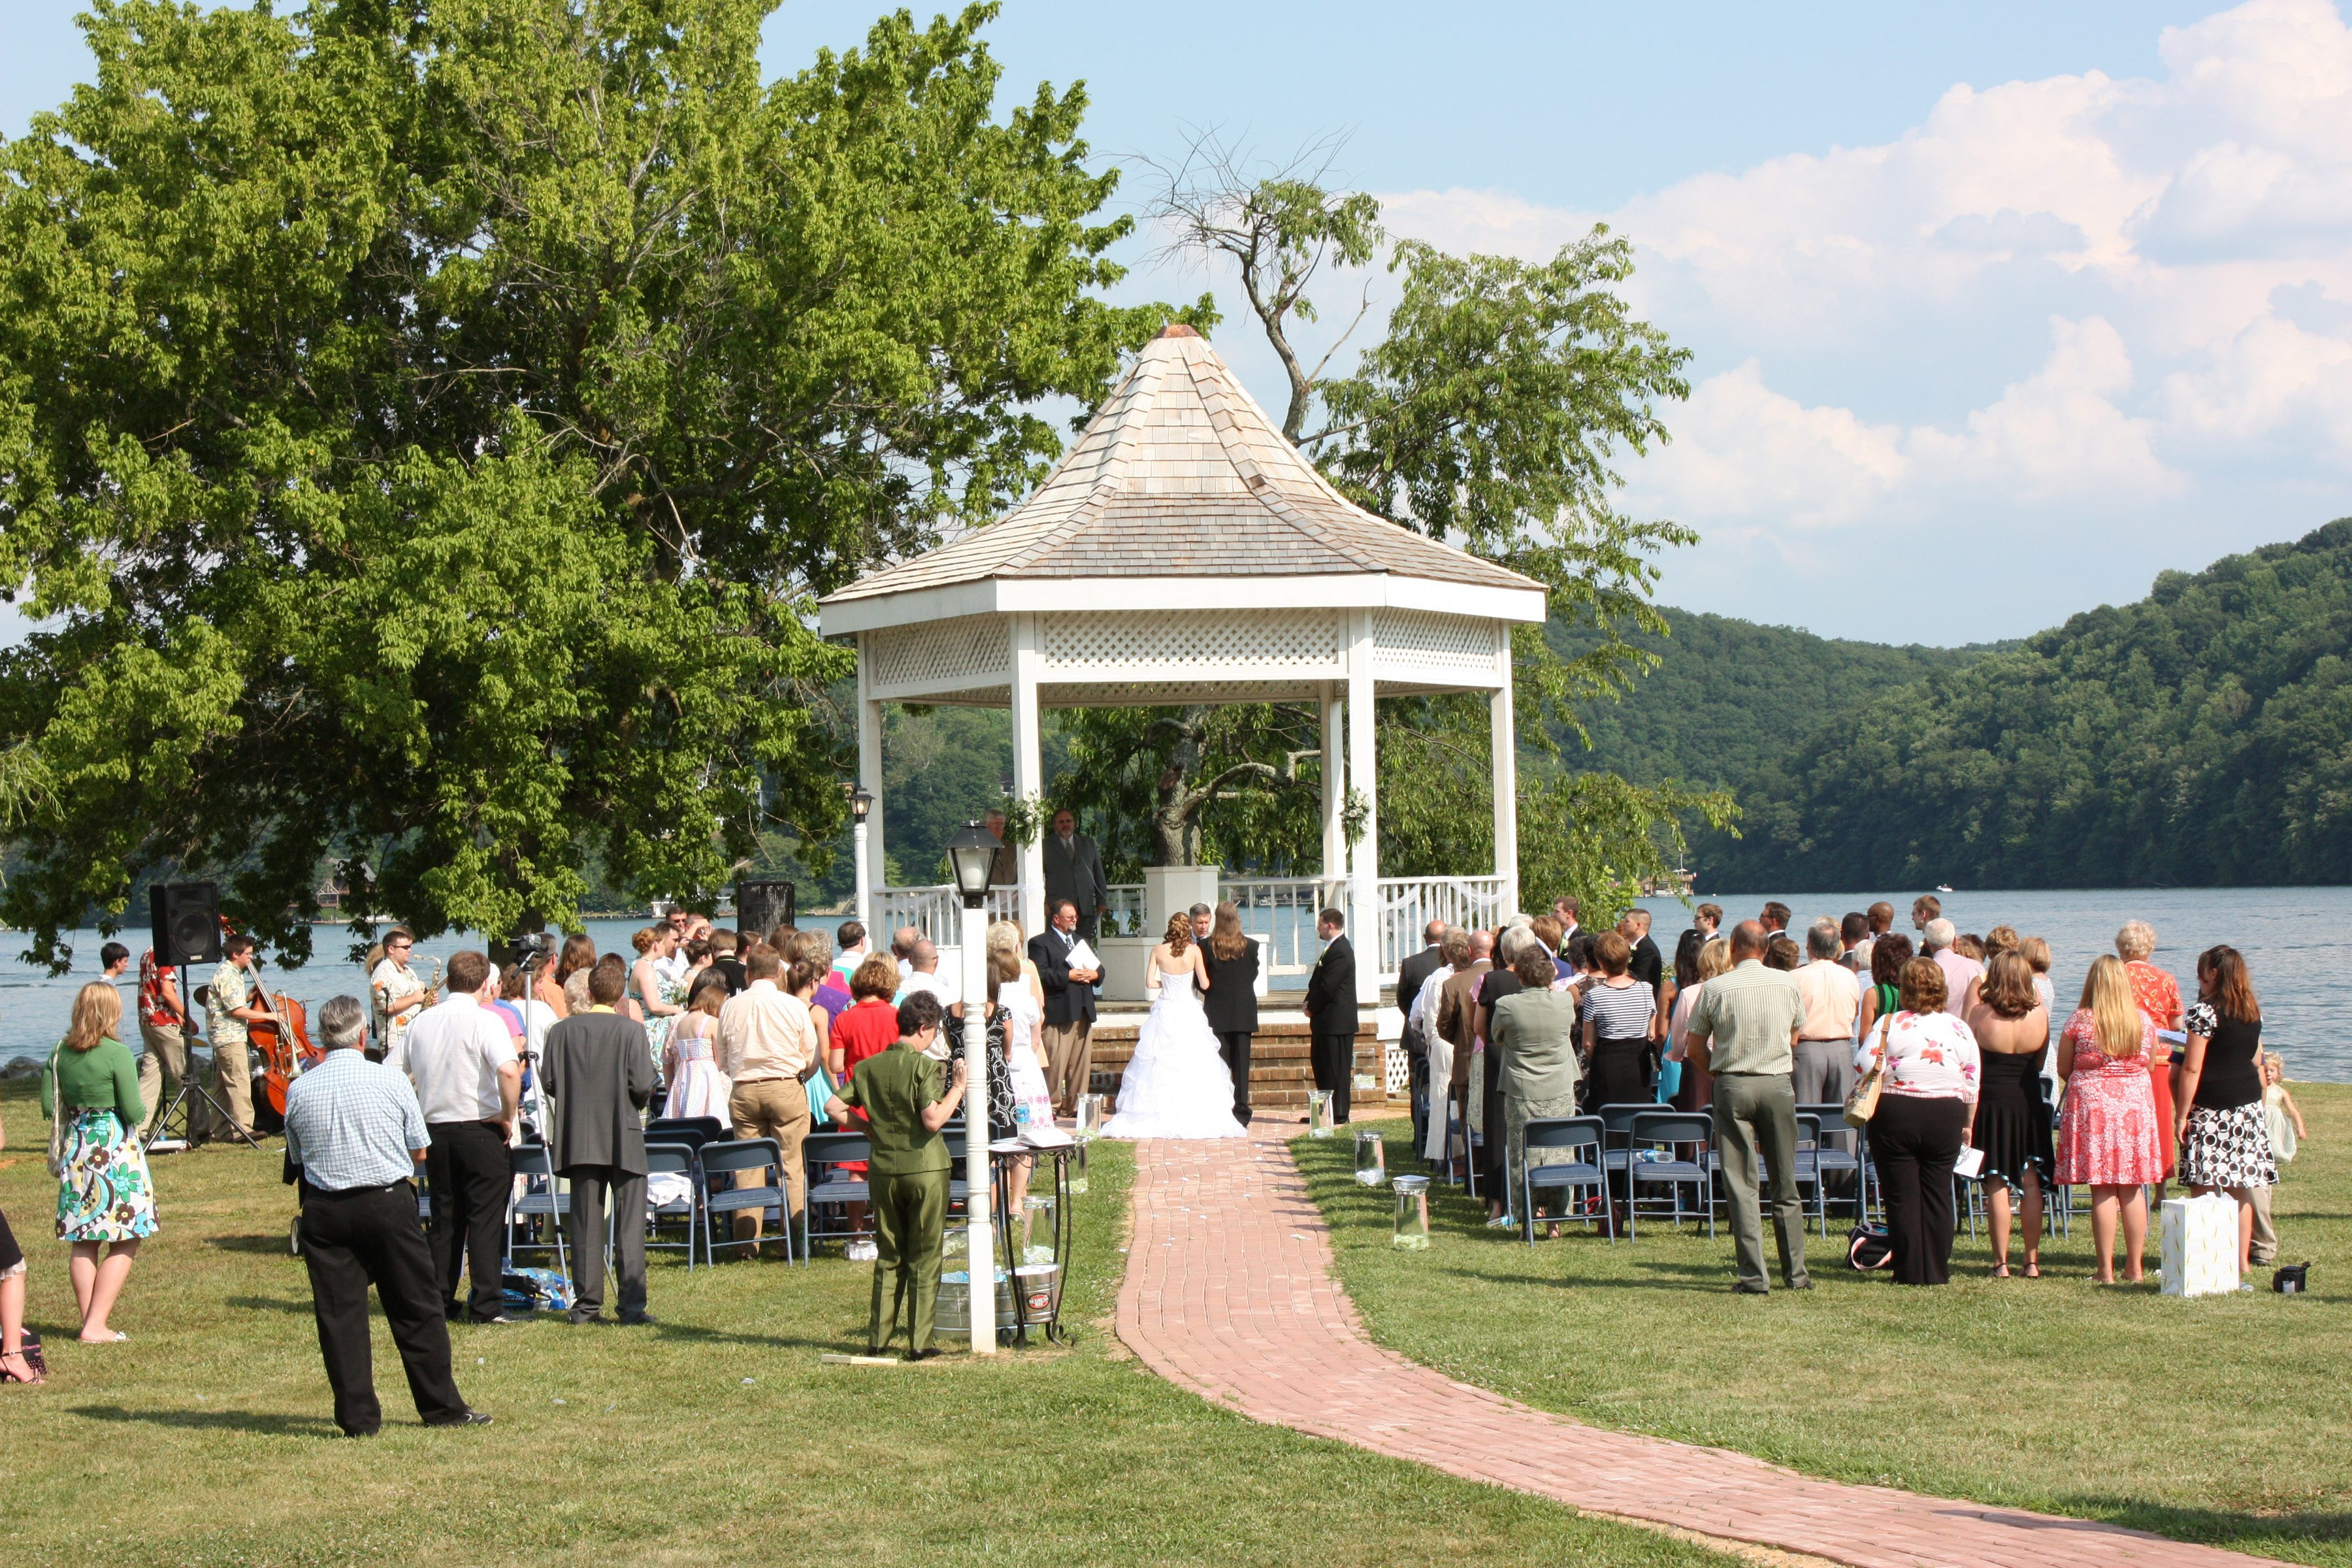 Waterfront wedding ceremony outside on a gazebo on a bright, sunny day